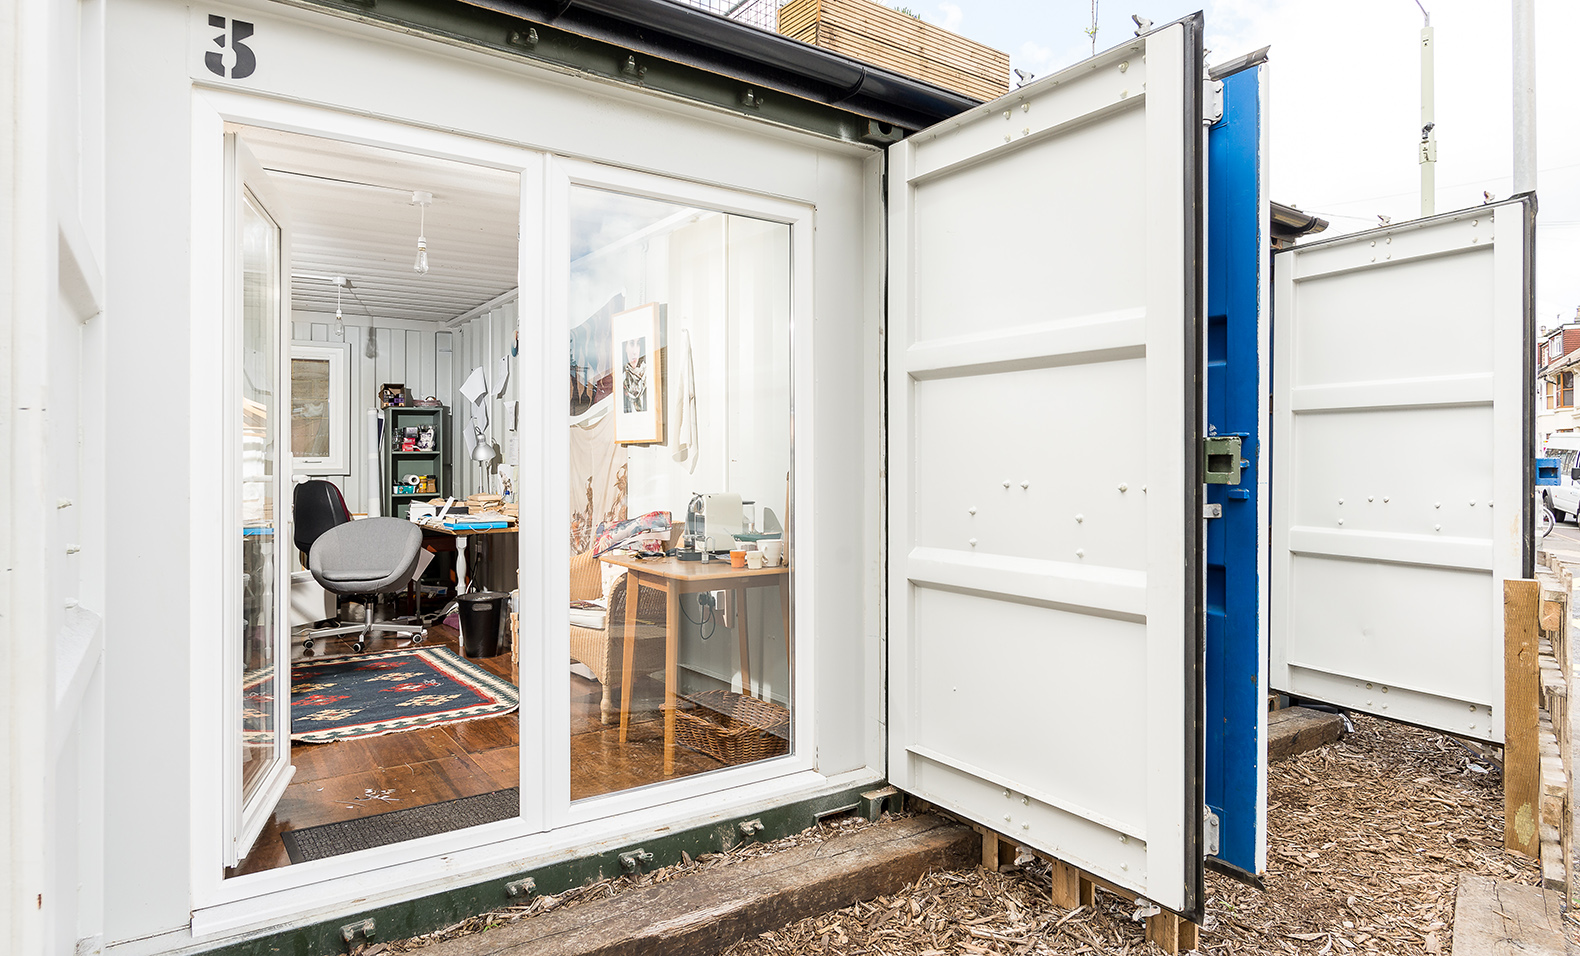 CargoTek taps shipping containers for affordable UK homes and offices